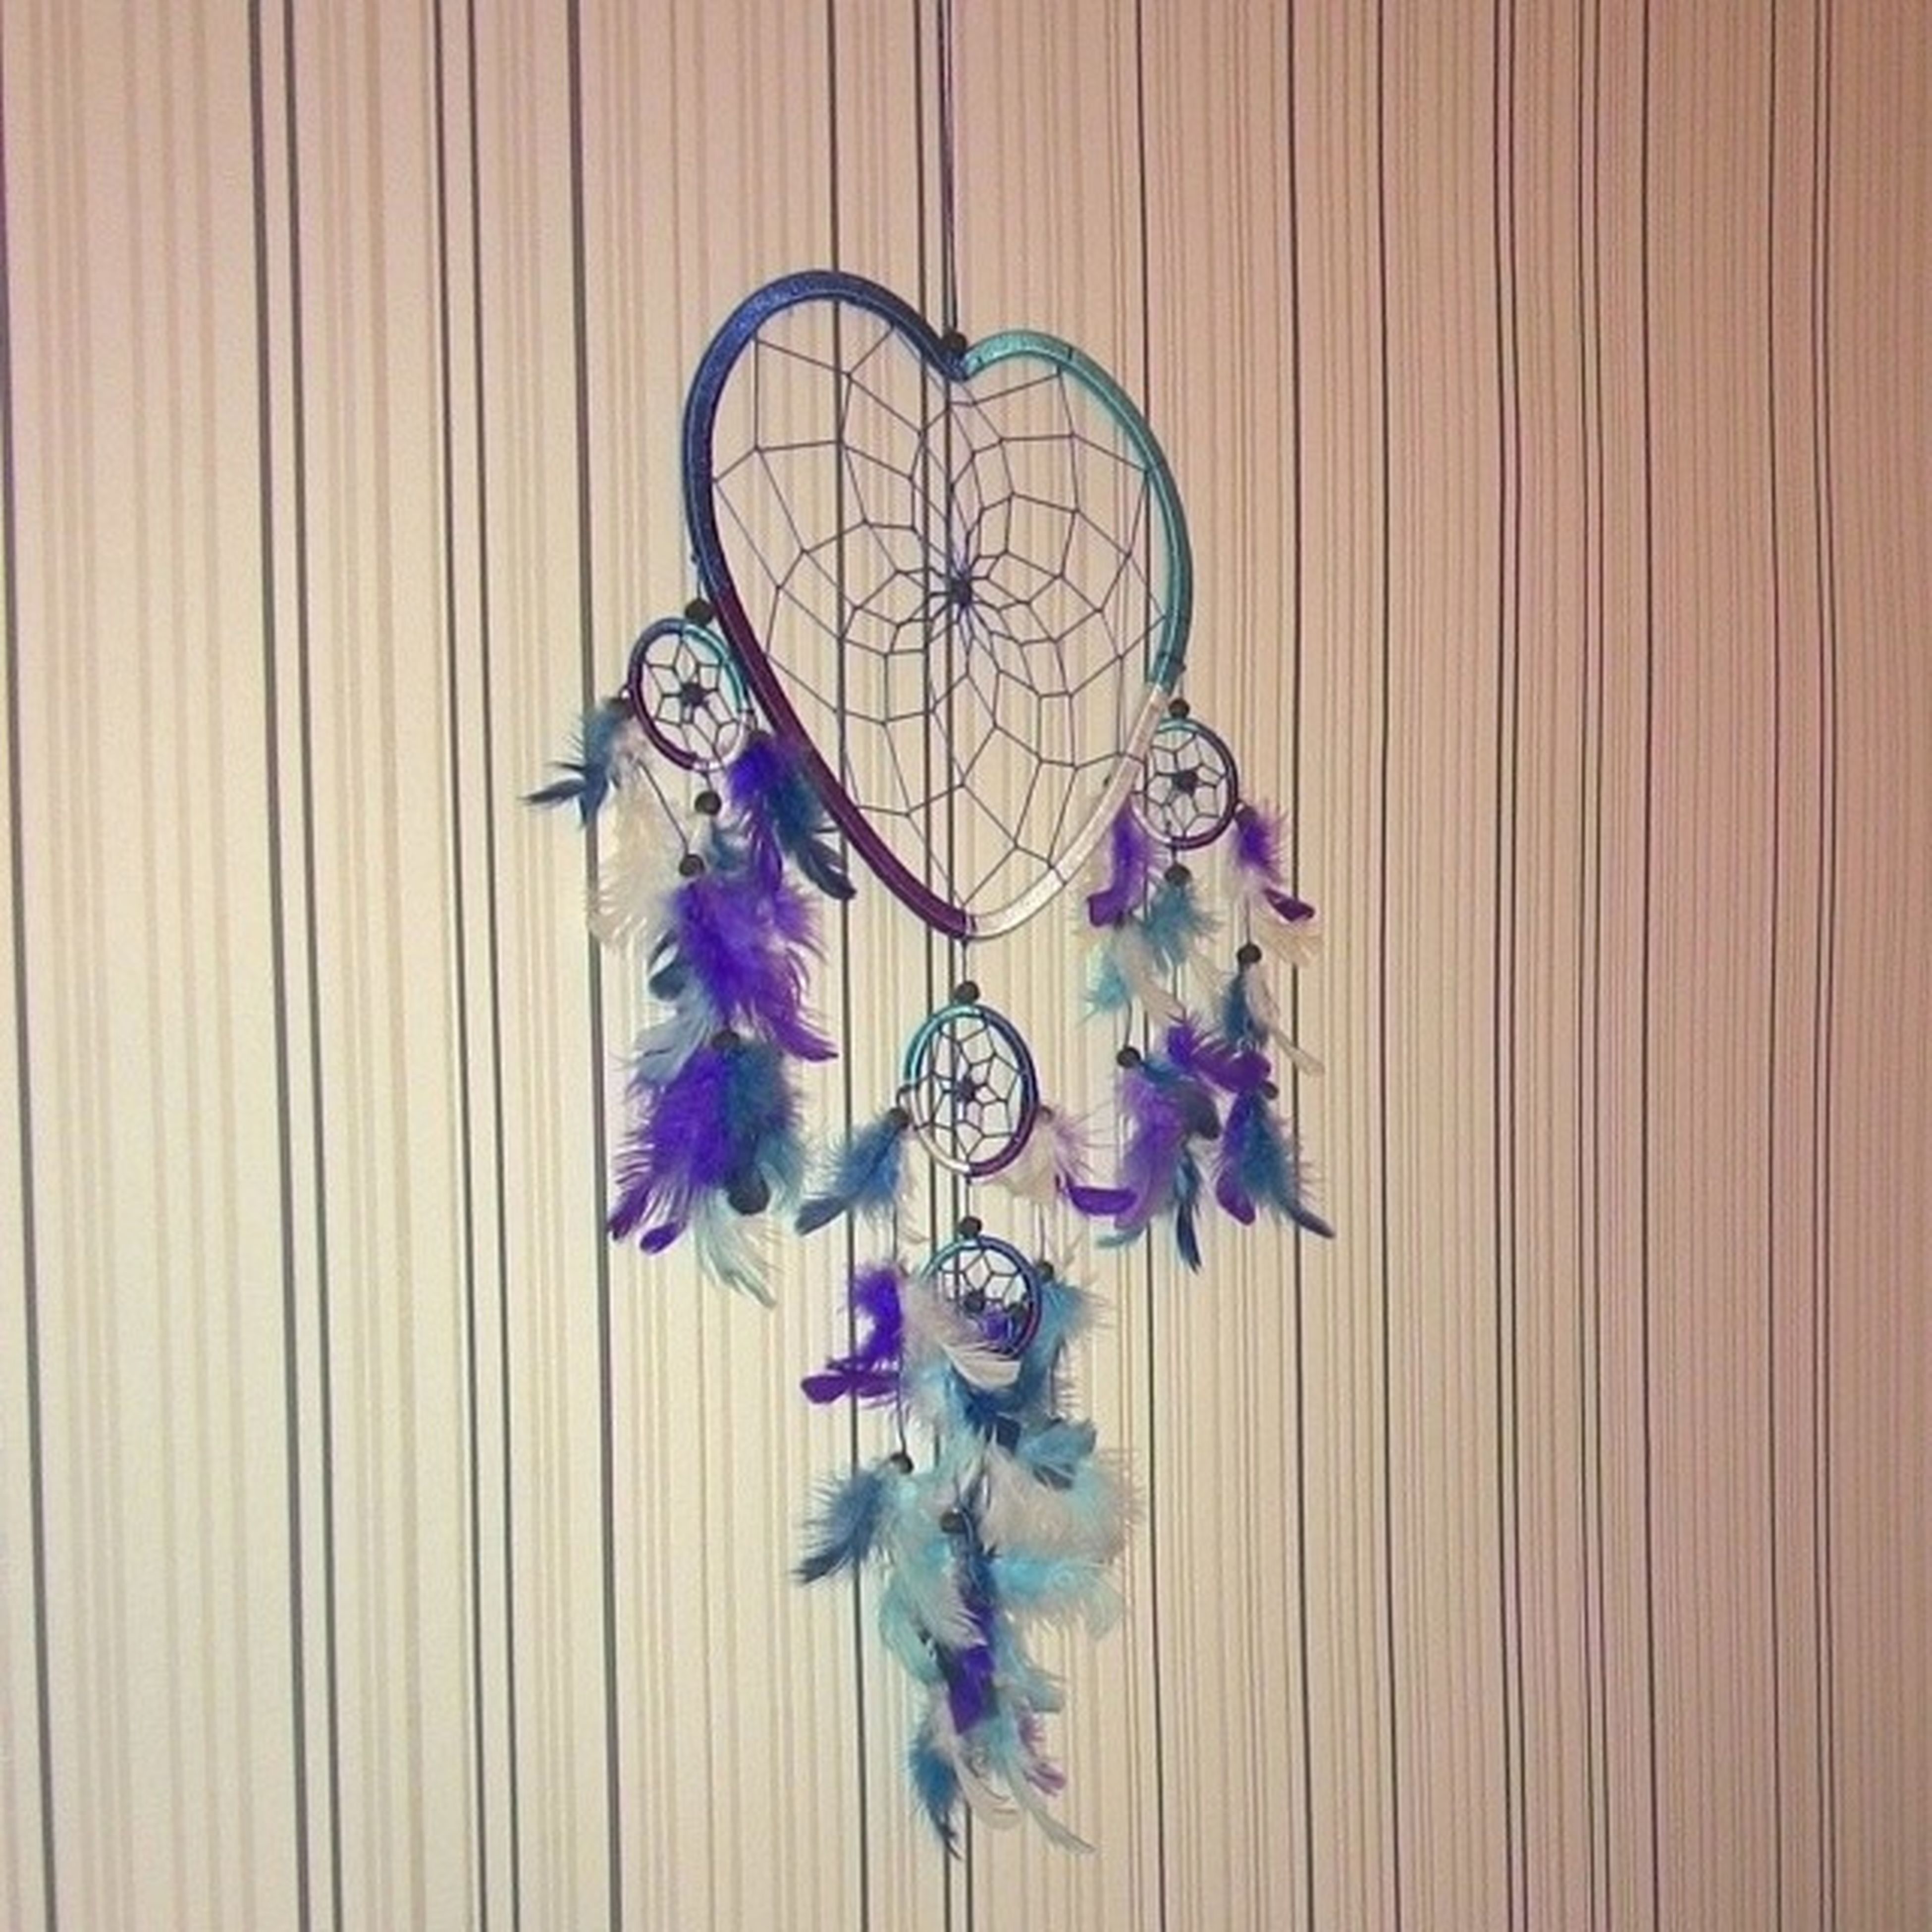 flower, indoors, close-up, wood - material, hanging, still life, decoration, wall - building feature, purple, blue, no people, creativity, wooden, art and craft, art, wall, variation, fragility, day, wood